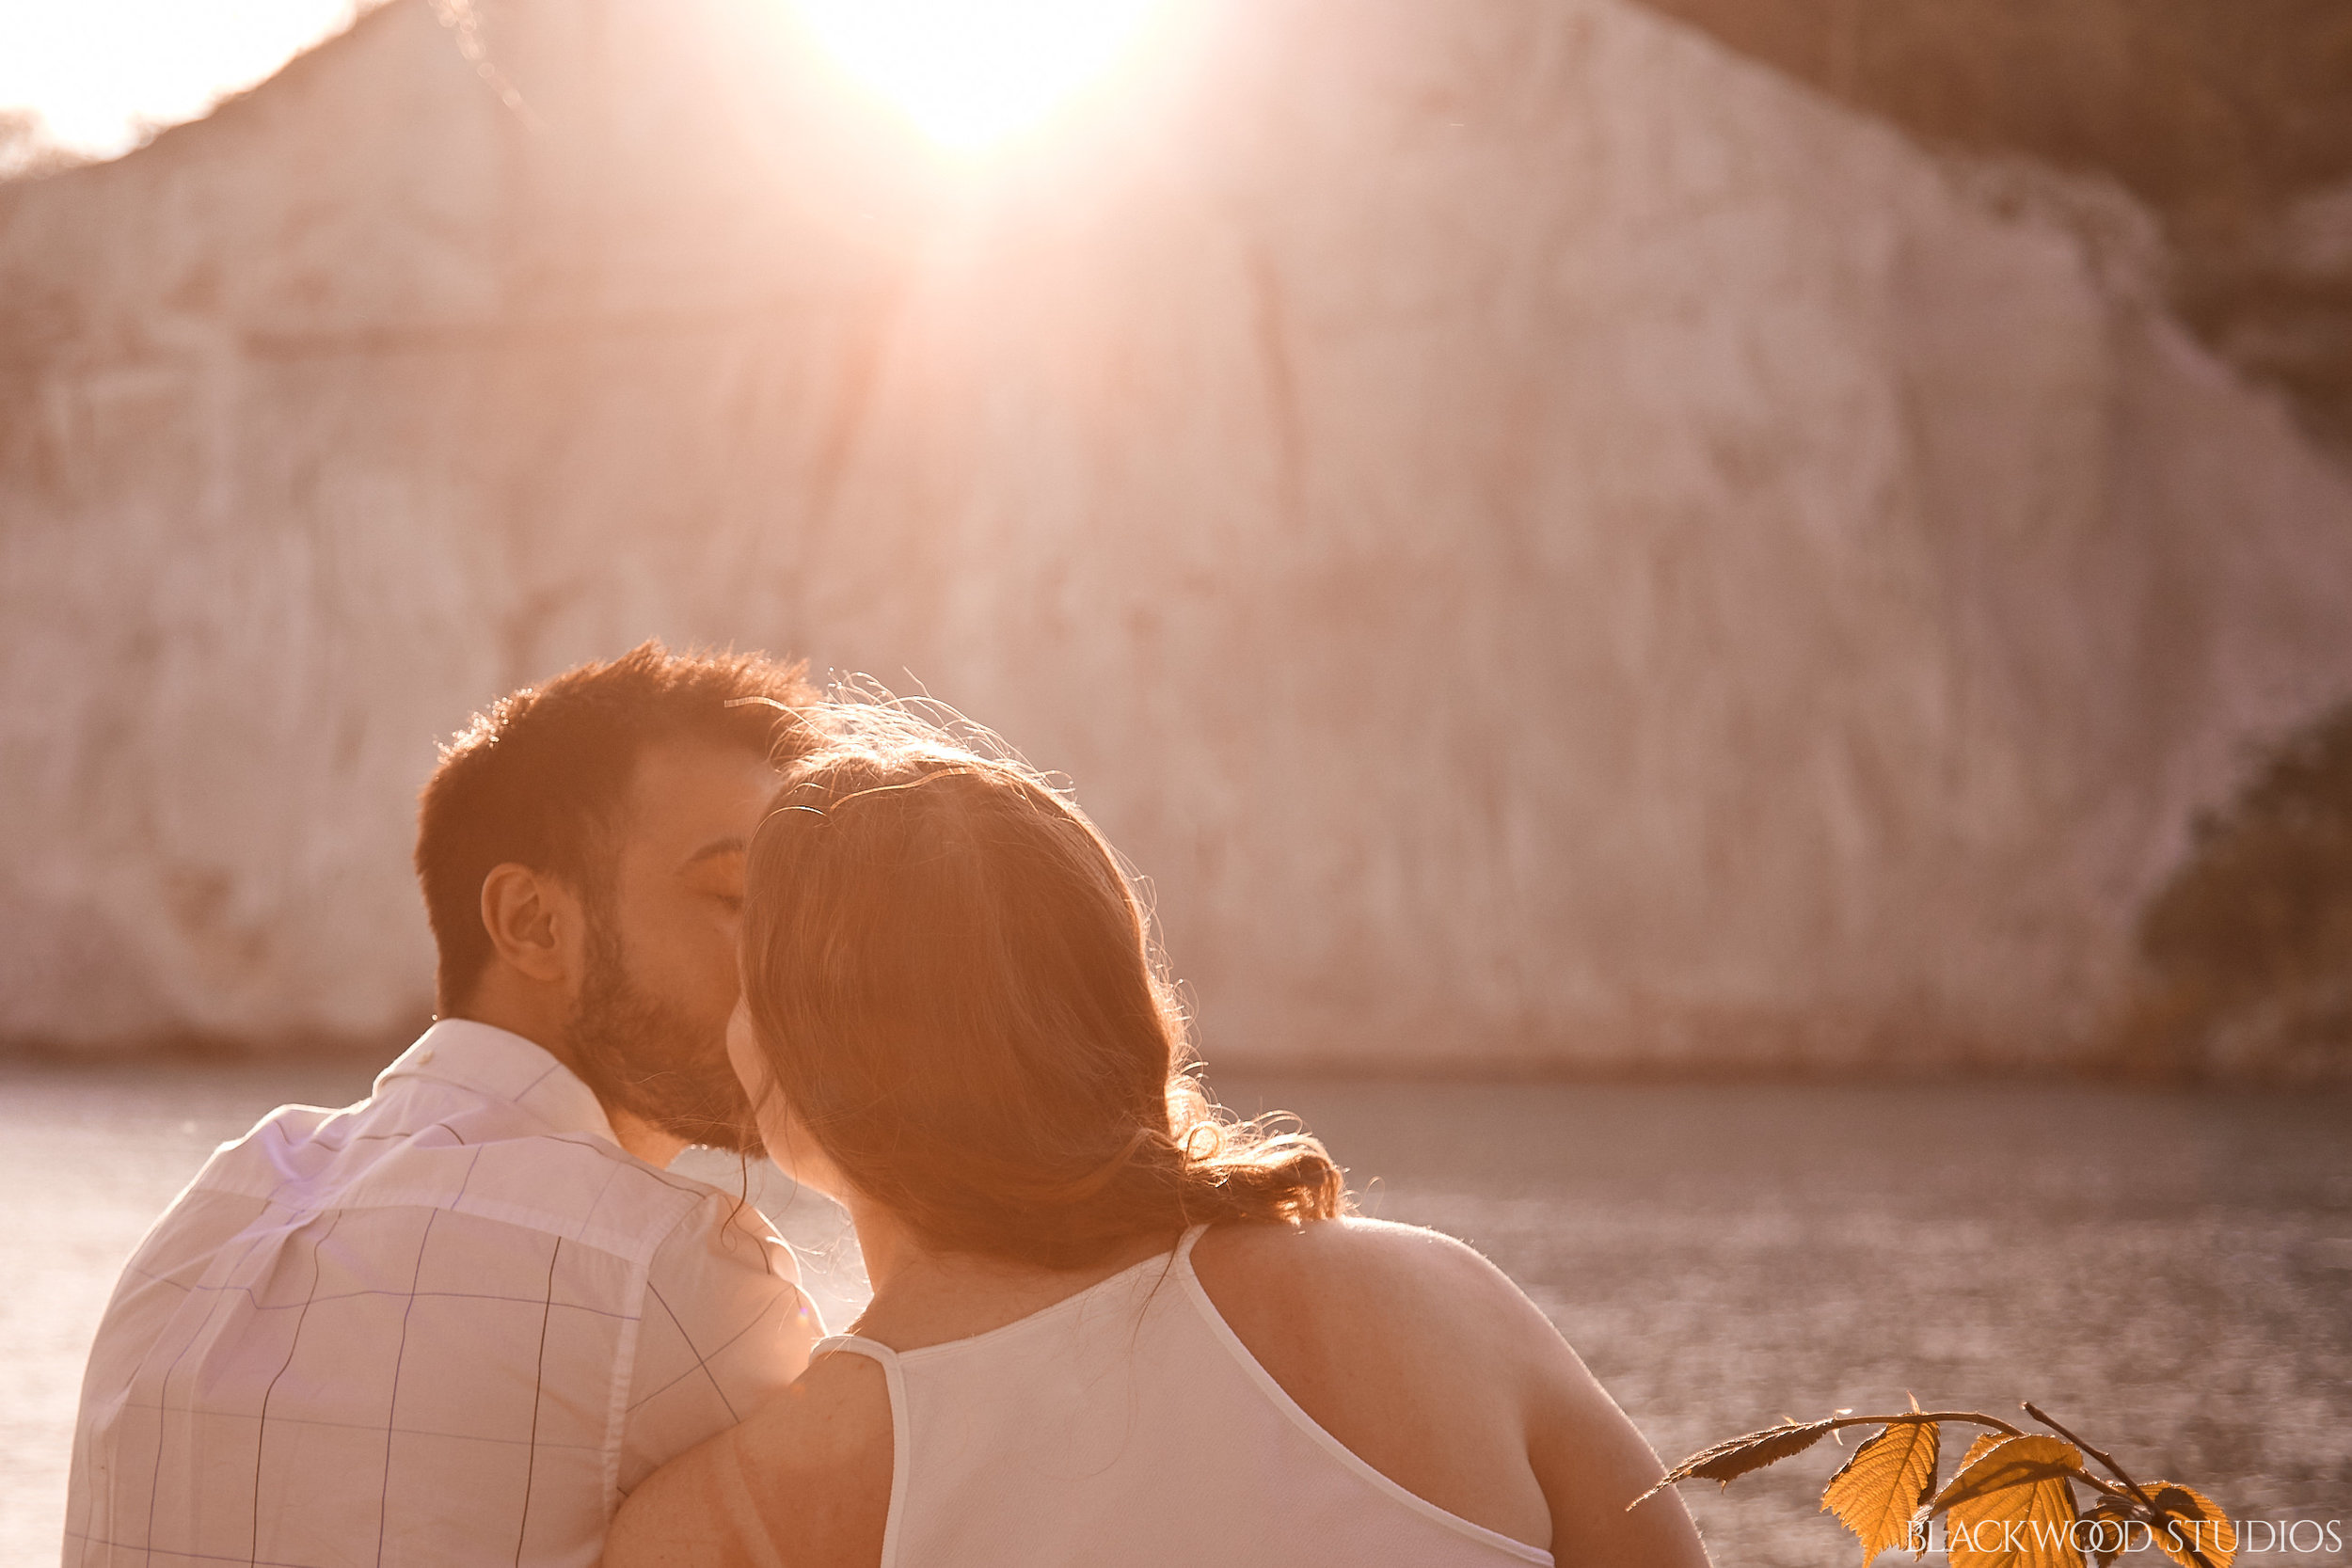 Blackwood-Studios-Photography-20190608193328-Brianna-Bryan-Engagement-Scarbourgh-Bluffs-Park-Ontario-Canada.jpg